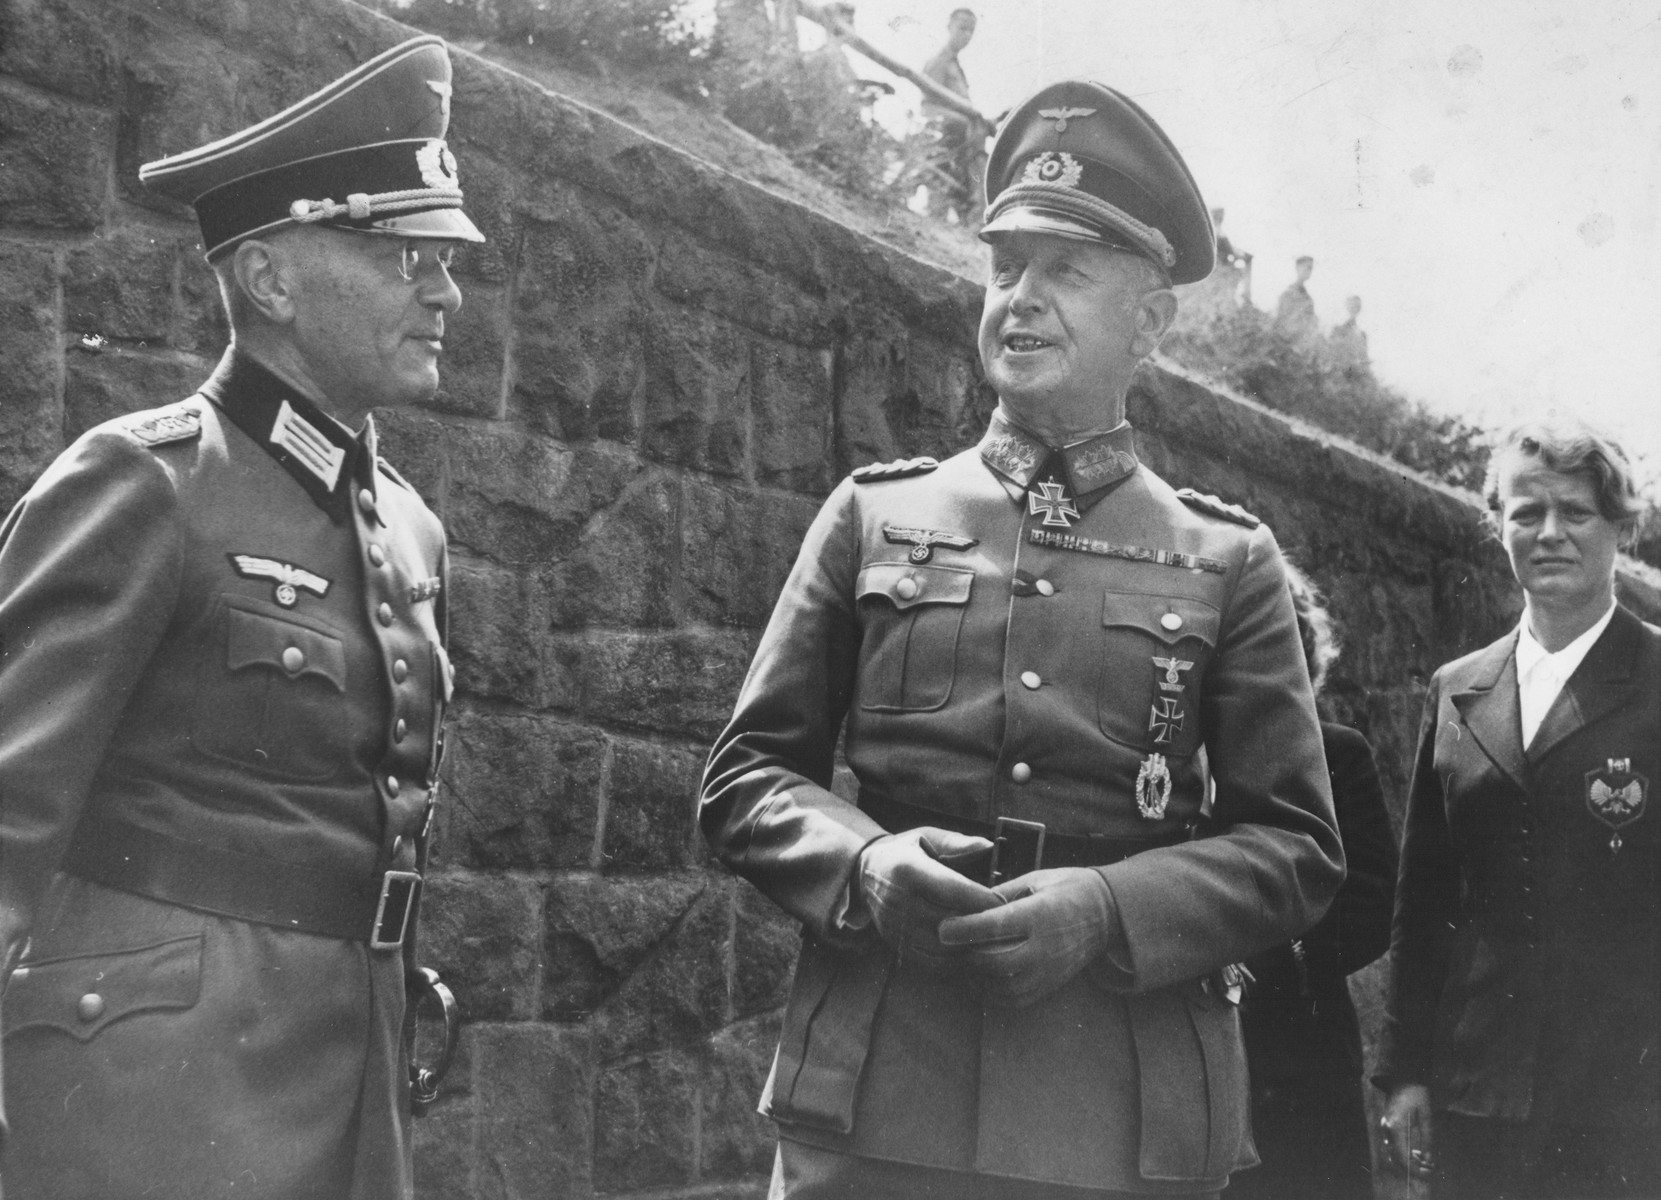 Two high-ranking German military officers converse in front of a stone wall.